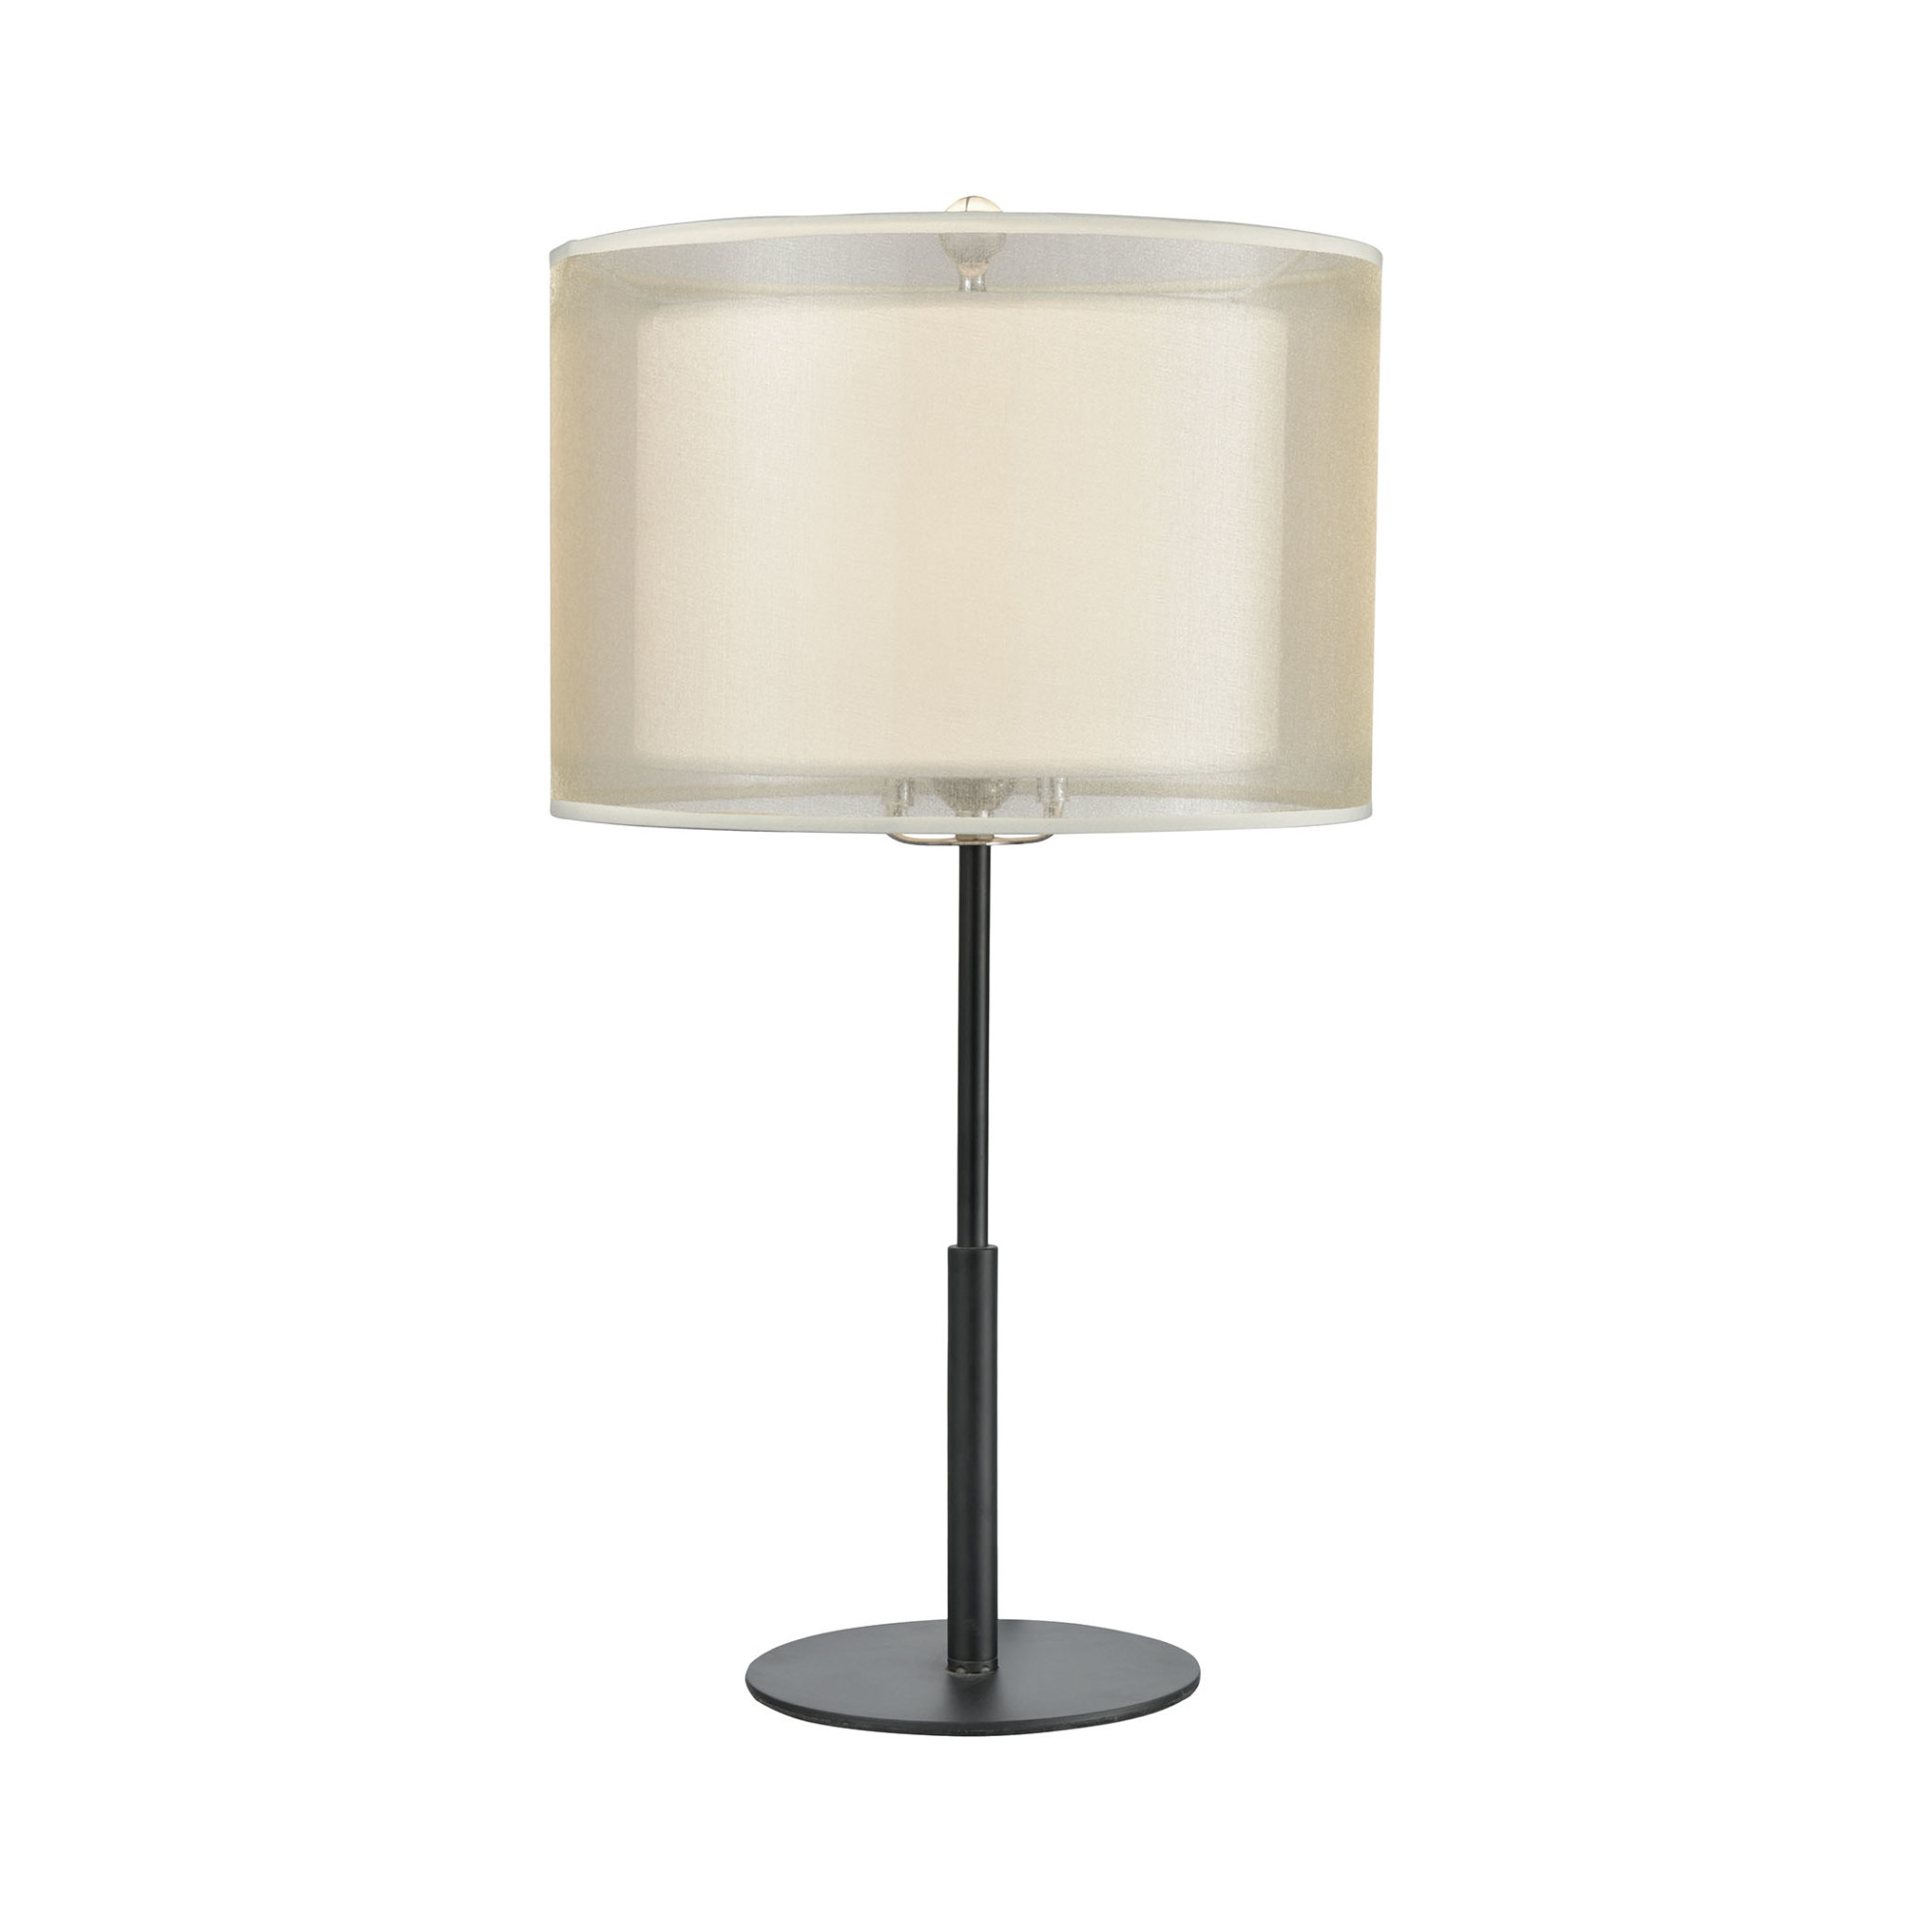 Details About Elk Lighting 46264 1 Ashland Light 21 H Buffet Table Lamp Matte Black